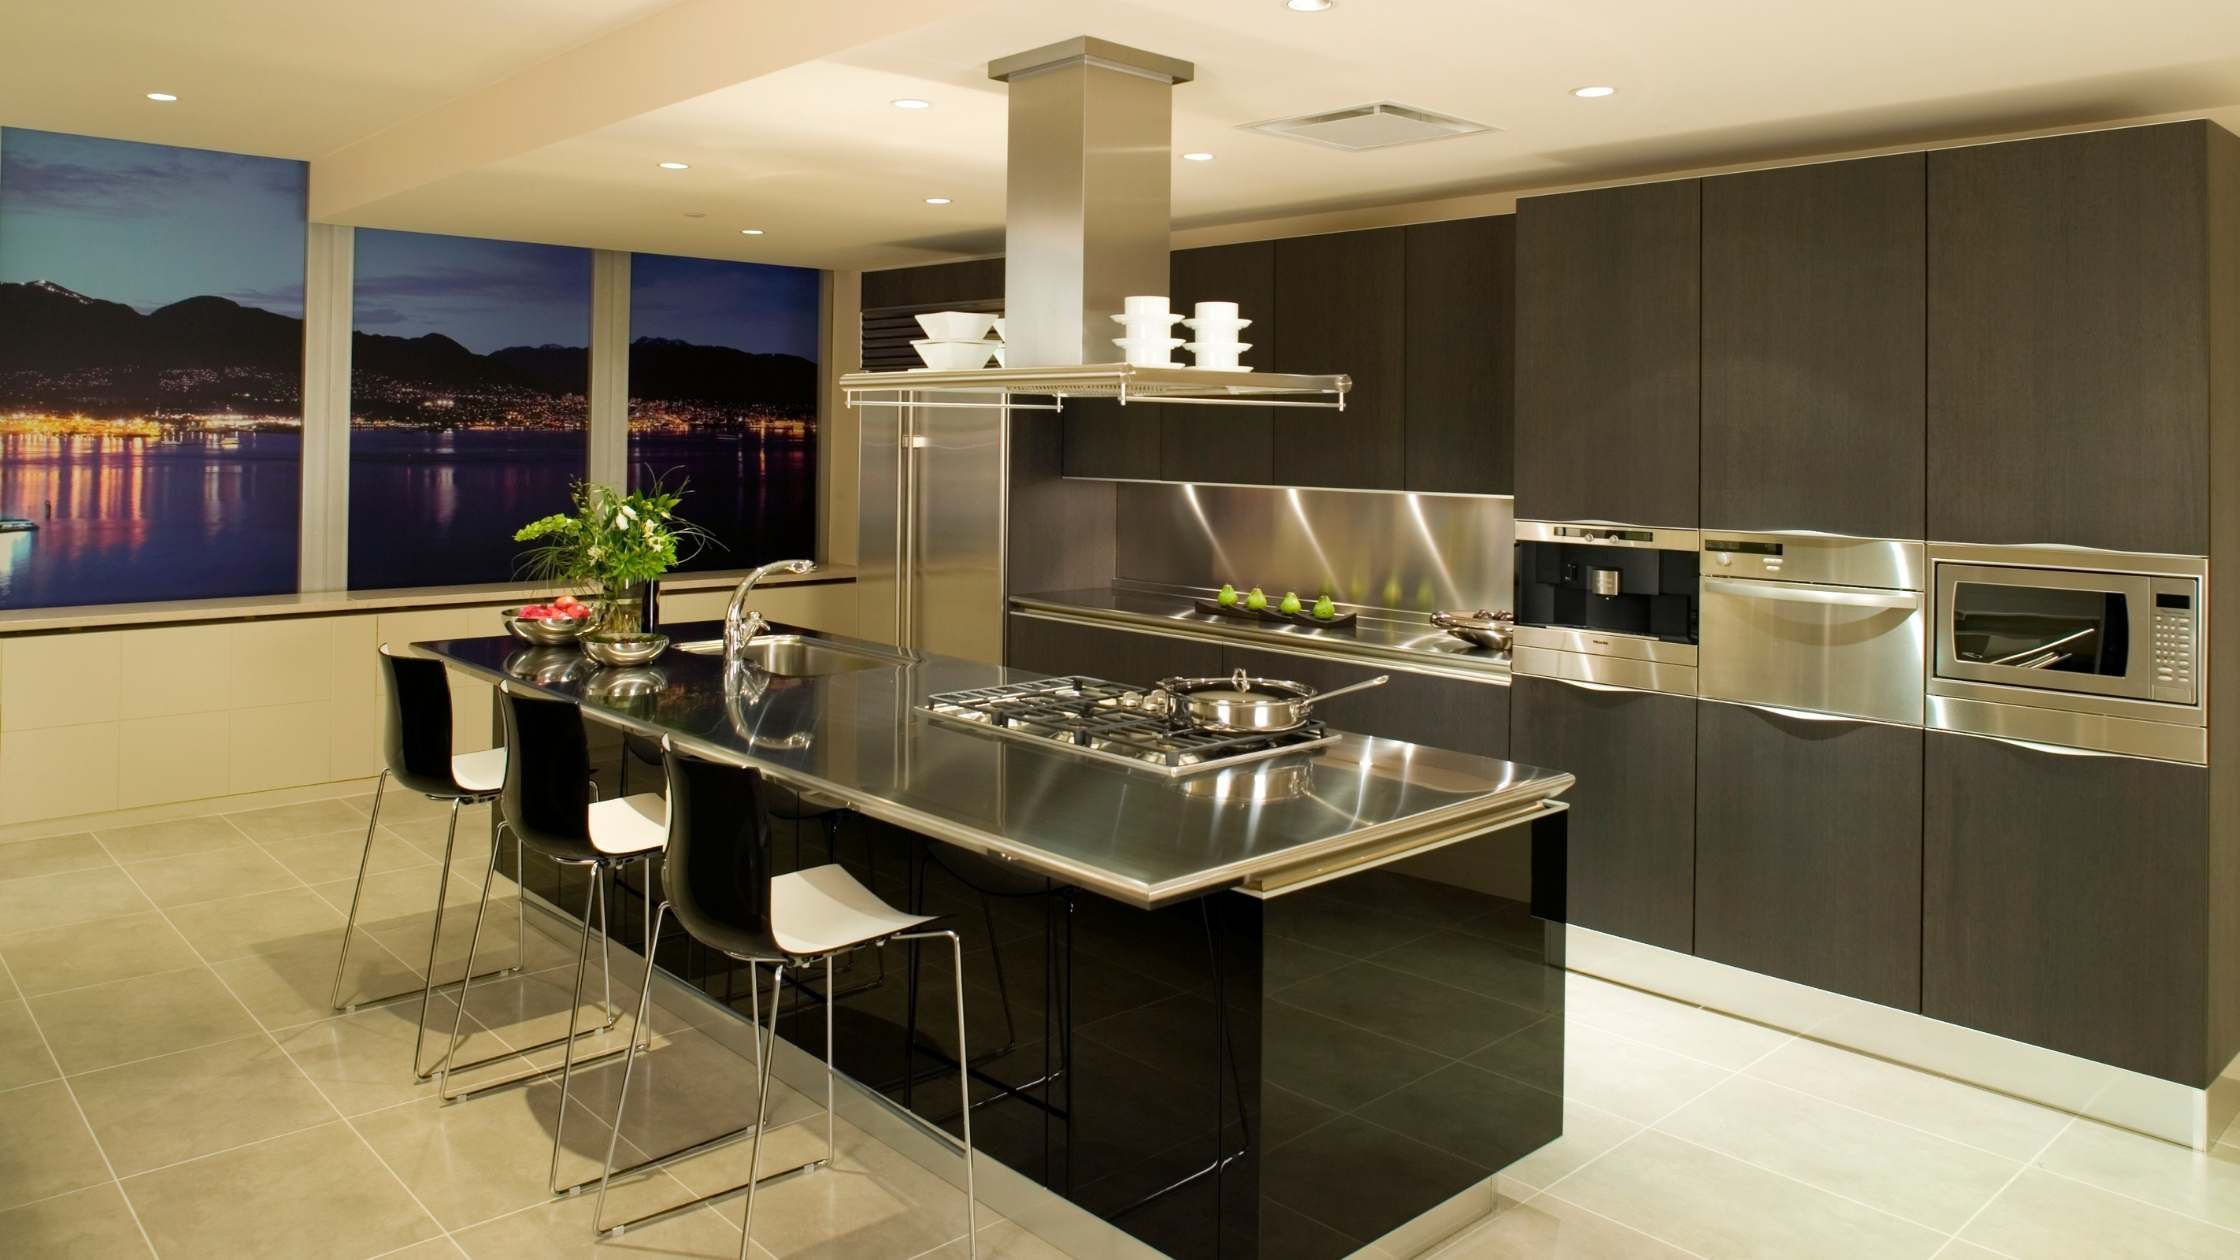 5 Condo Renovations That Add the Most Value